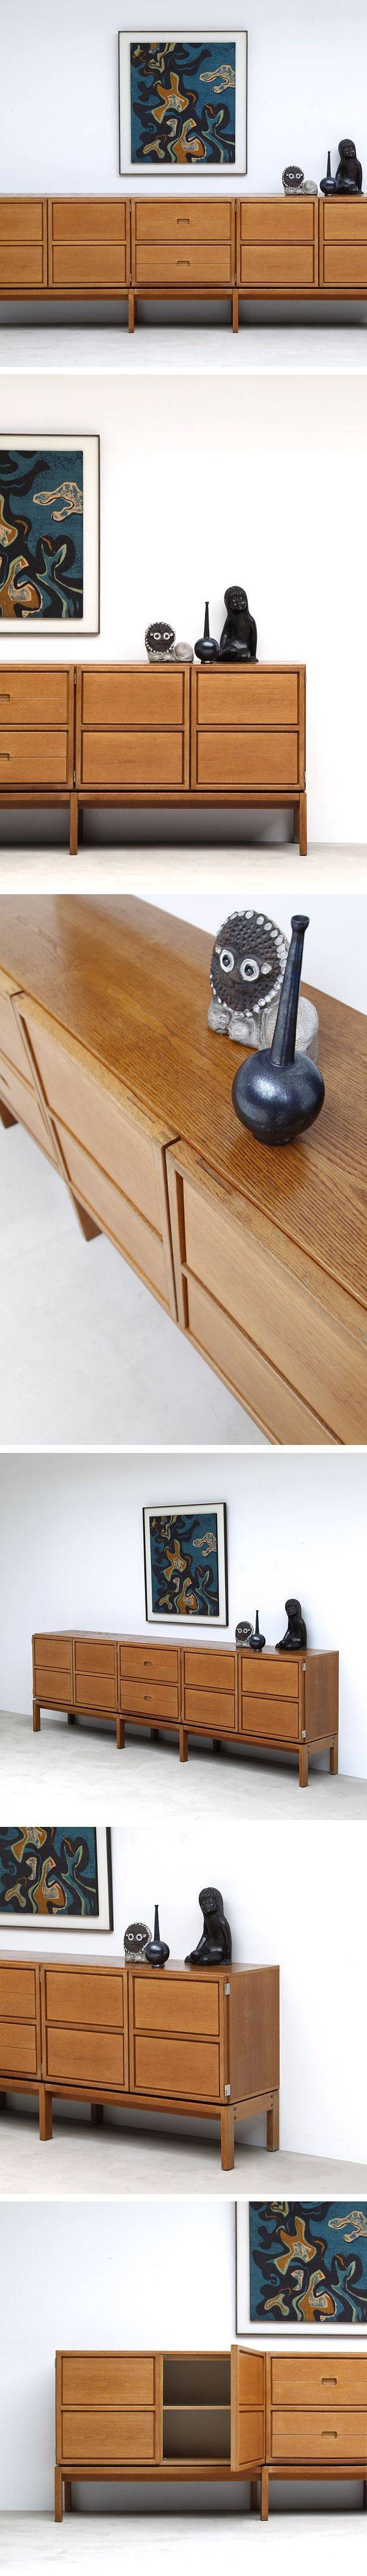 Best 20+ Large Sideboard Ideas On Pinterest   Large Console Table regarding Ready Assembled Sideboards (Image 3 of 30)